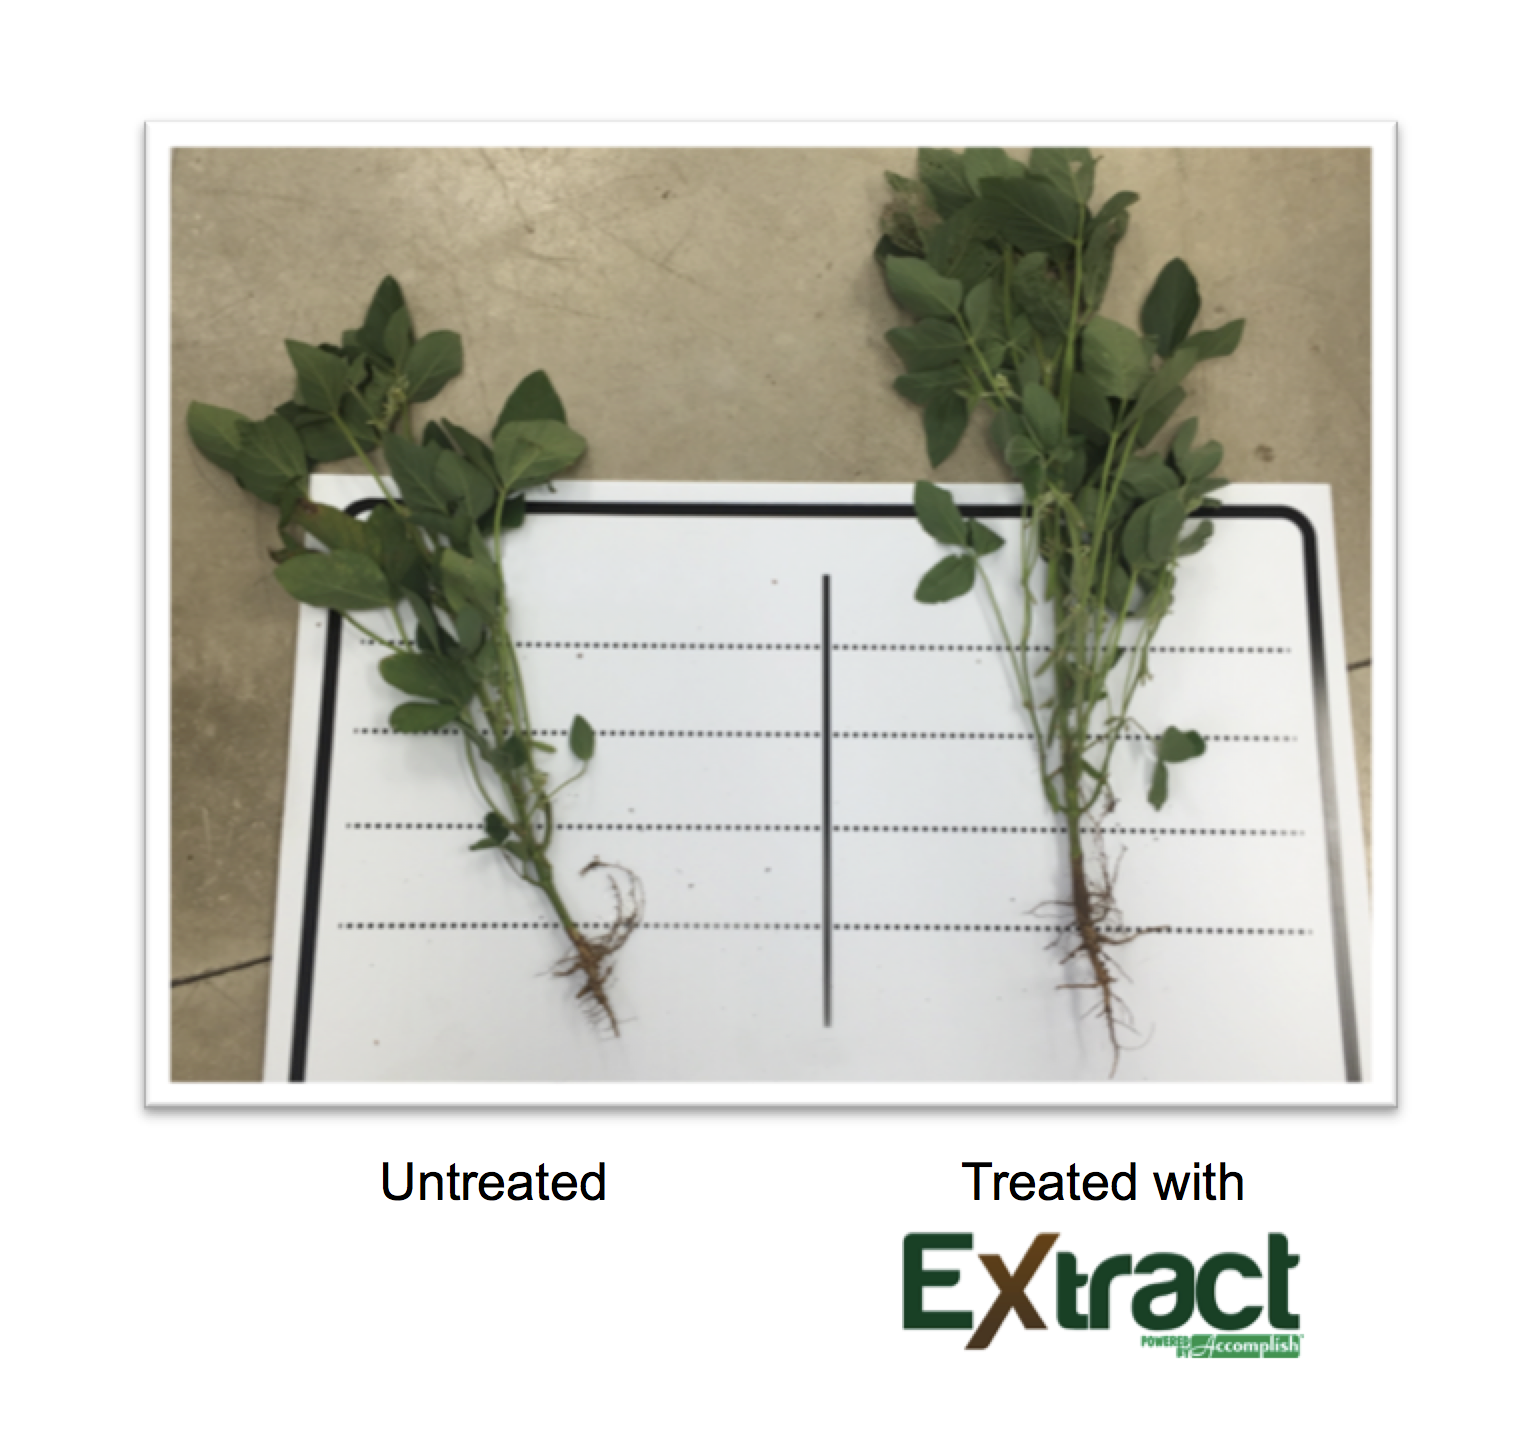 fall_extract_1_soybean